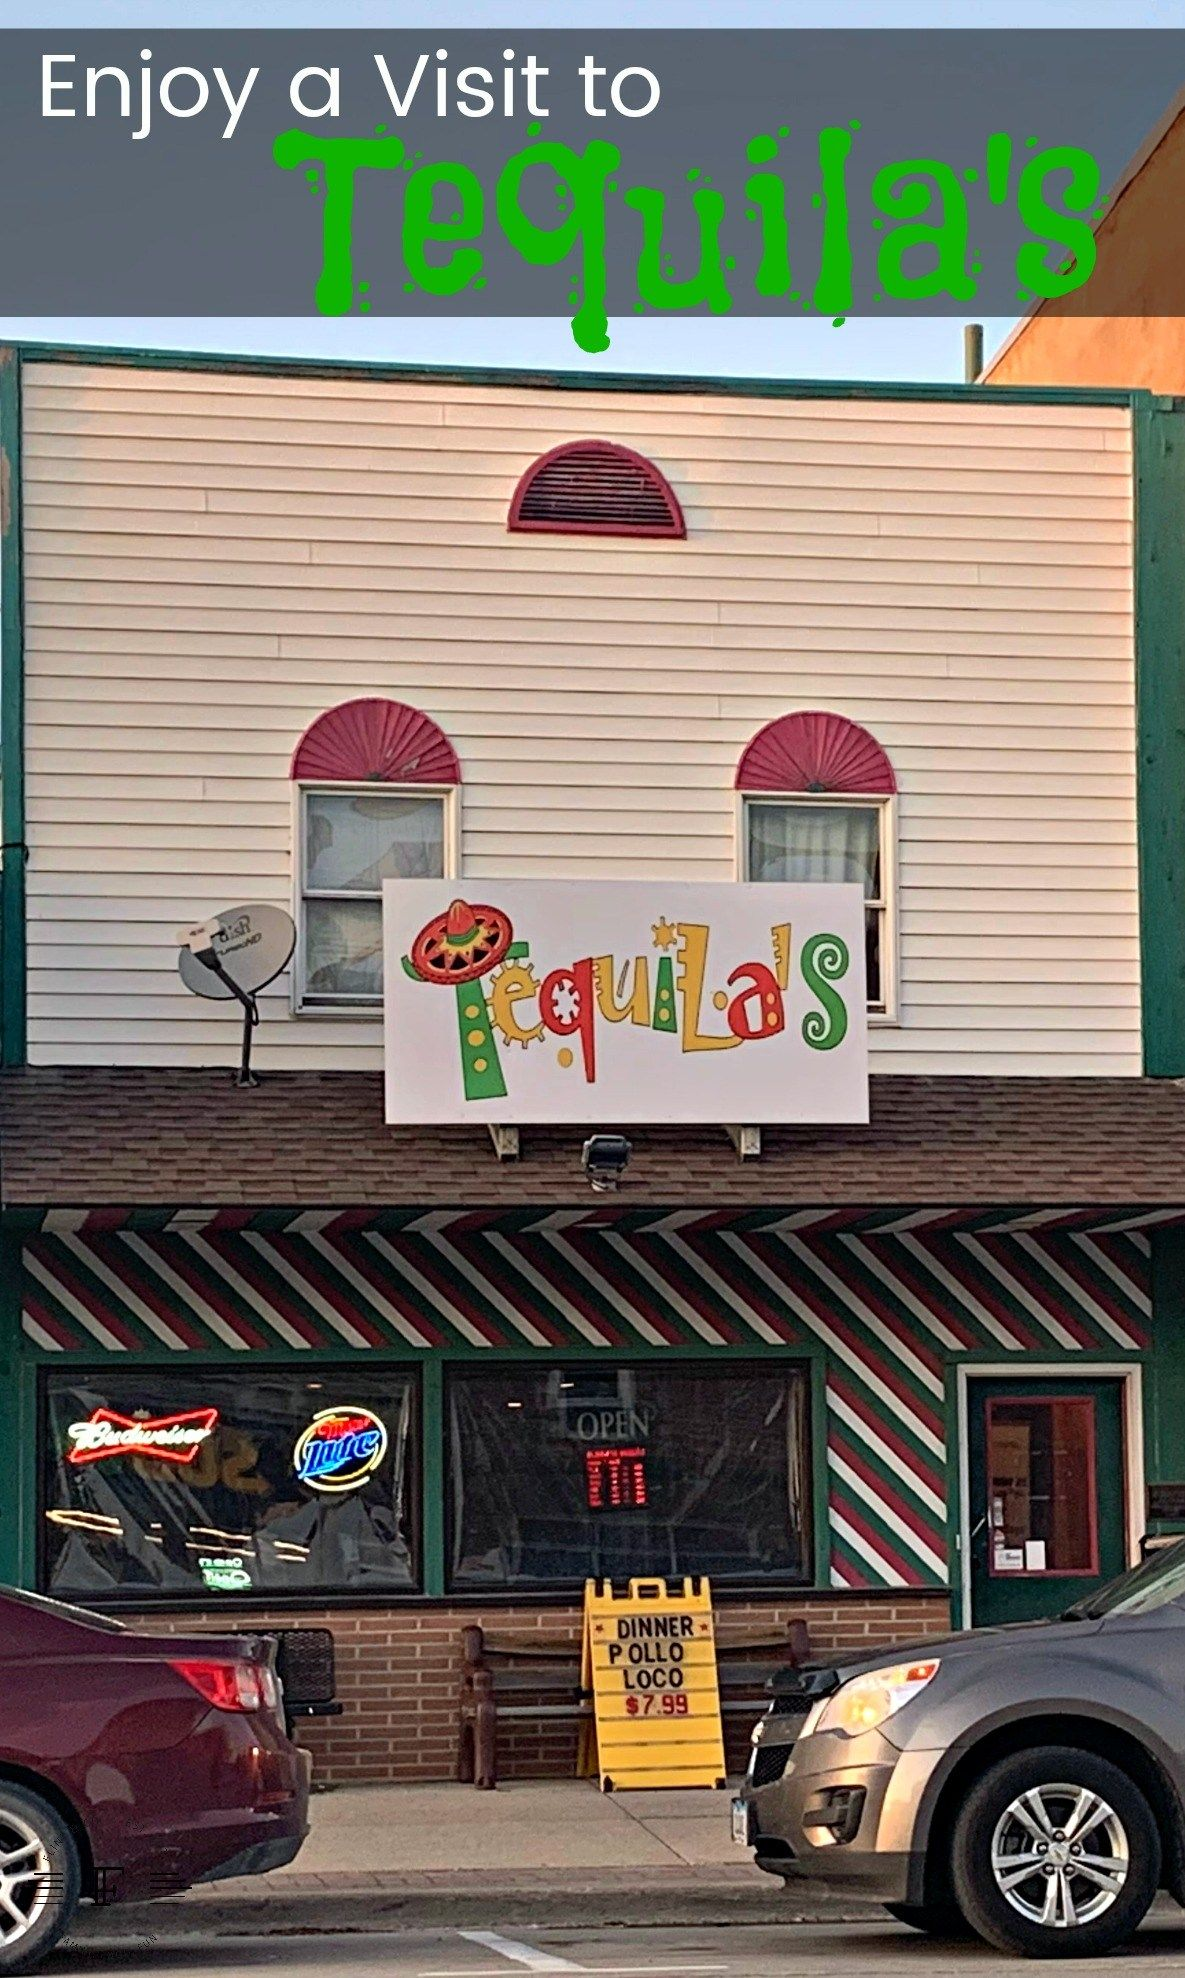 Enjoy a visit to tequilas in northwood ia with images